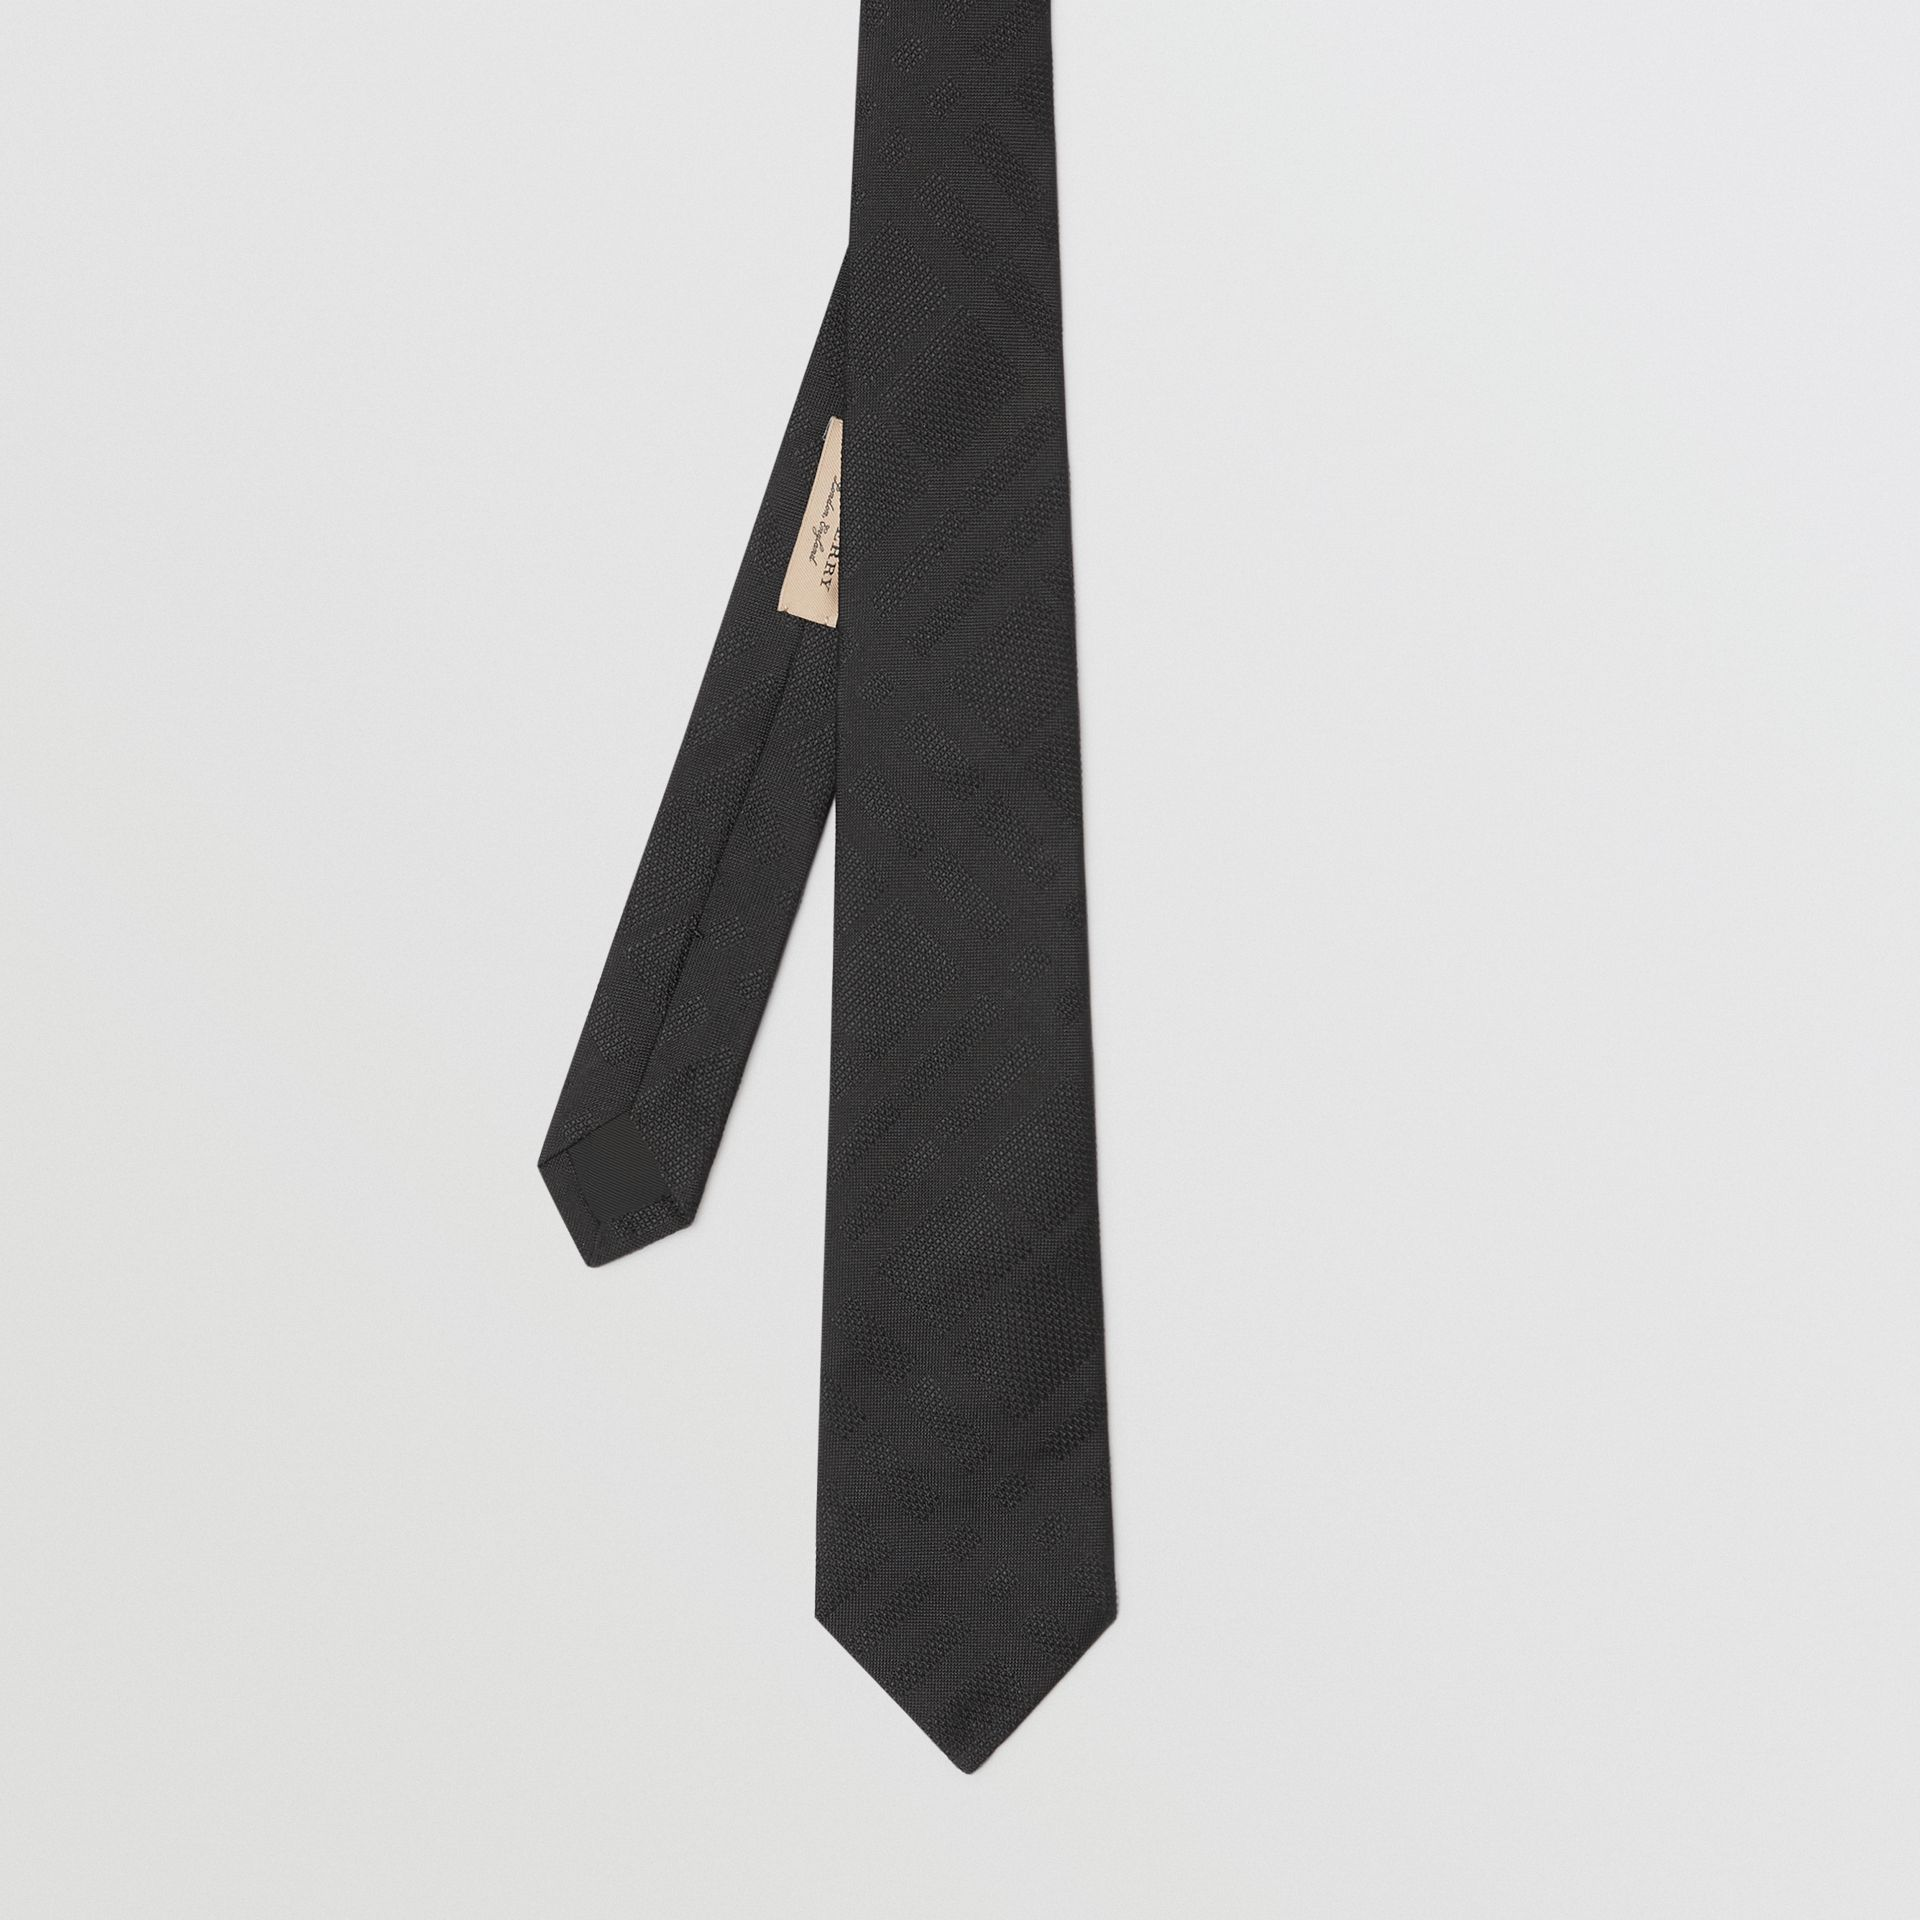 Classic Cut Check Silk Jacquard Tie in Black - Men | Burberry Canada - gallery image 3